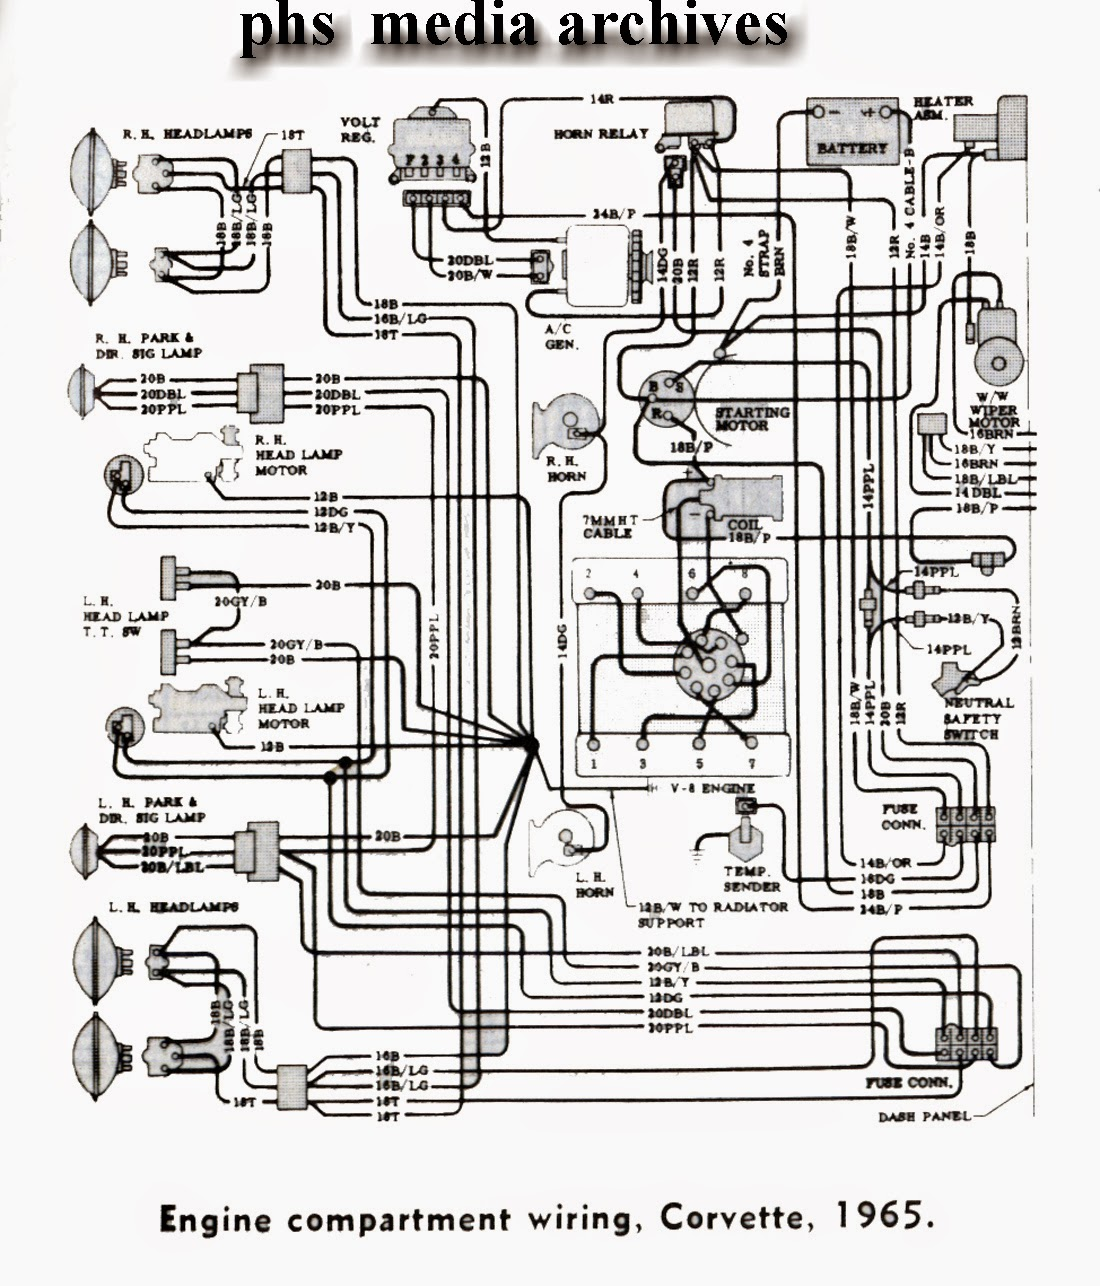 1965 Gmc Wiring Diagram 1964 Corvette Dash Just Data Rh Ag Skiphire Co Uk 1985 Chevy Truck 1996 Electrical Diagrams